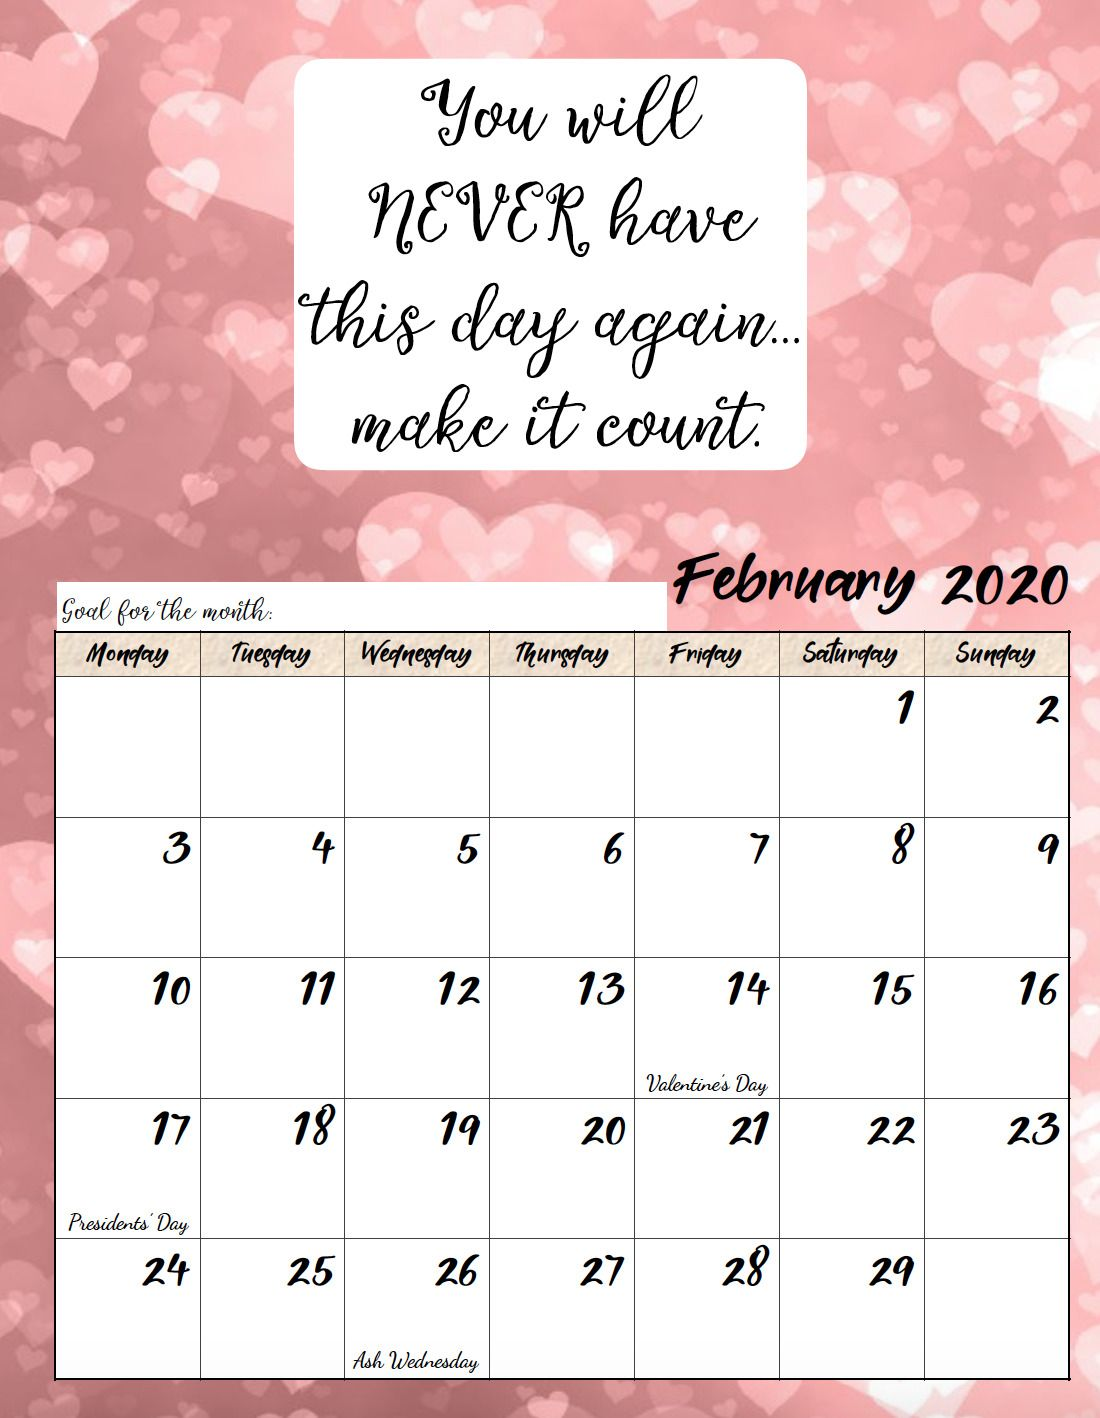 Free Printable 2020 Monday Start Monthly Motivational Calendars Space For Setting Goals Dif Calendar Quotes Calendar Printables Inspirational Quotes Calendar